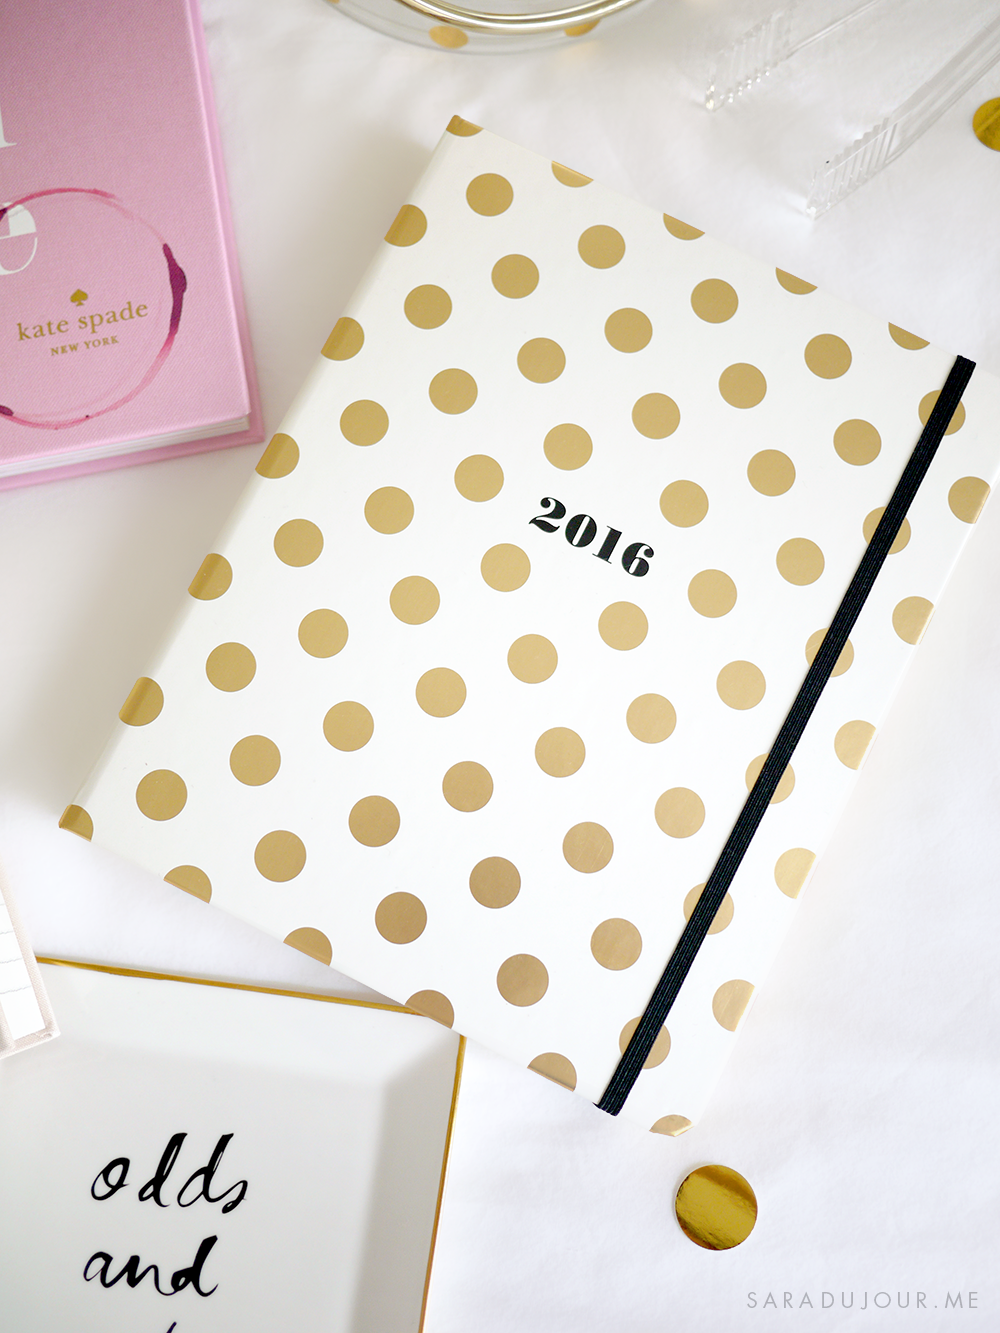 Kate Spade Home & Stationary Haul | Sara du Jour